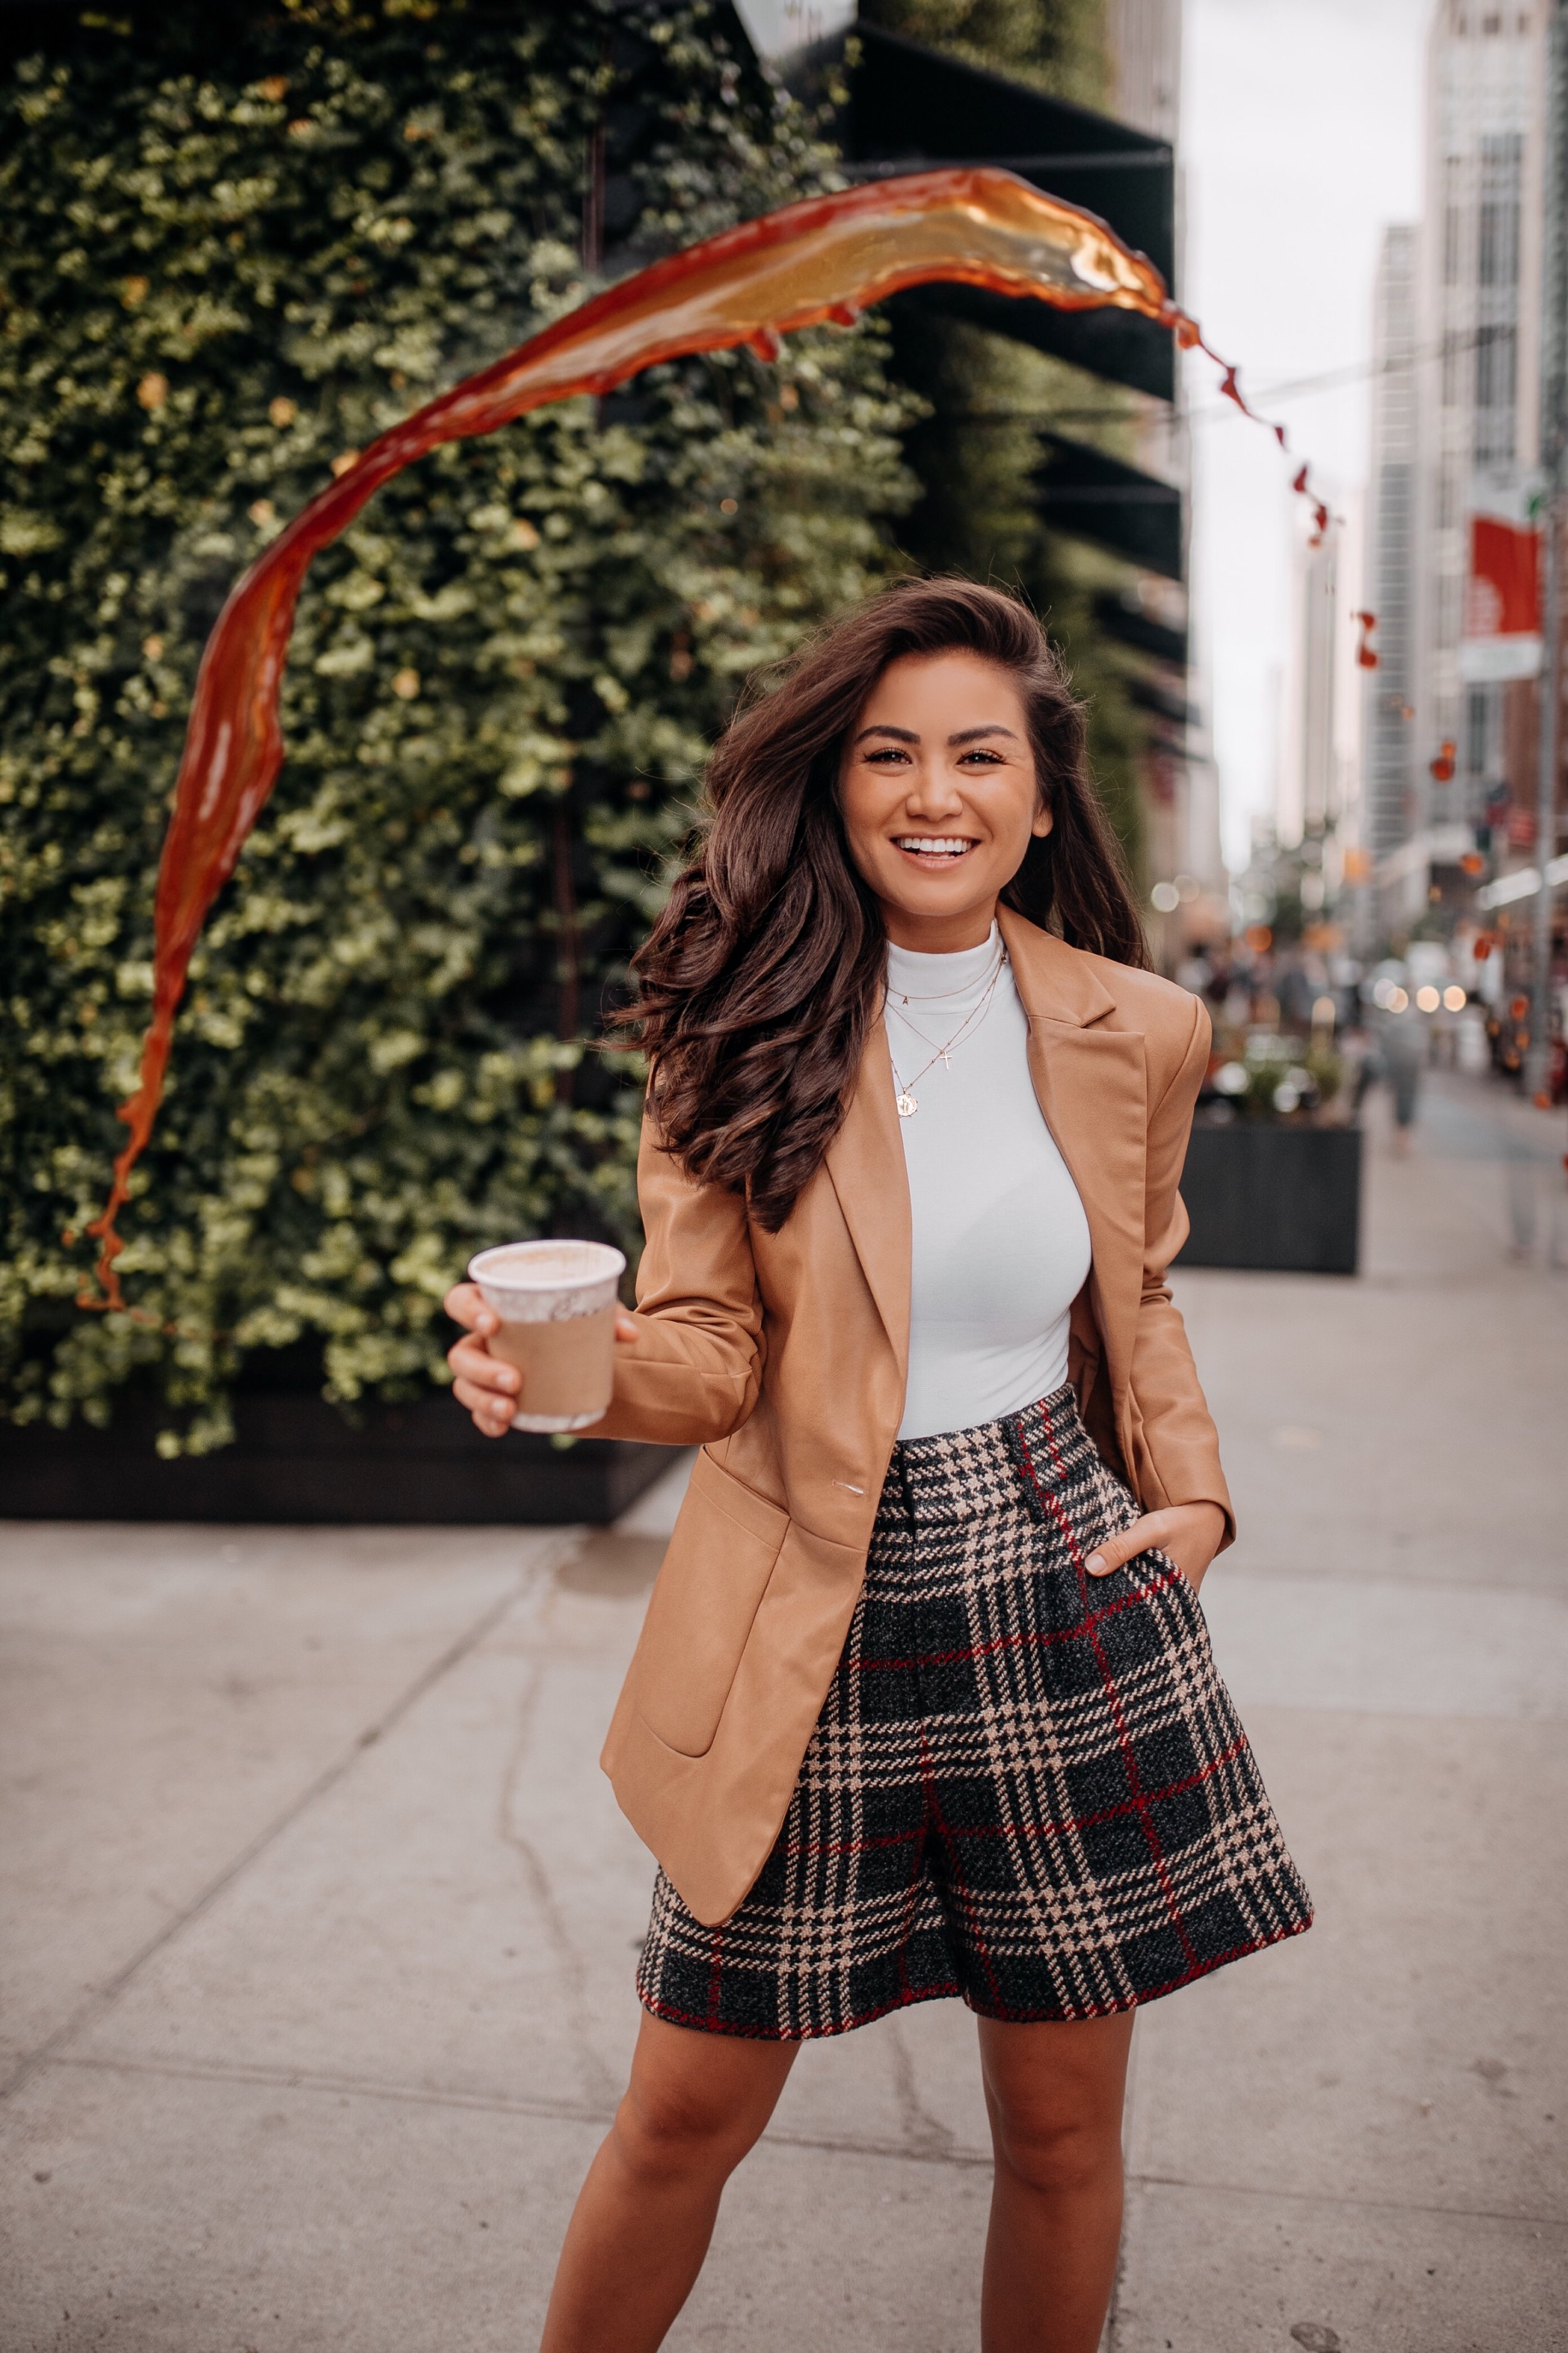 Caila Quinn The Bachelor Express Clothing NYFW New York Fashion Week Spilled Coffee